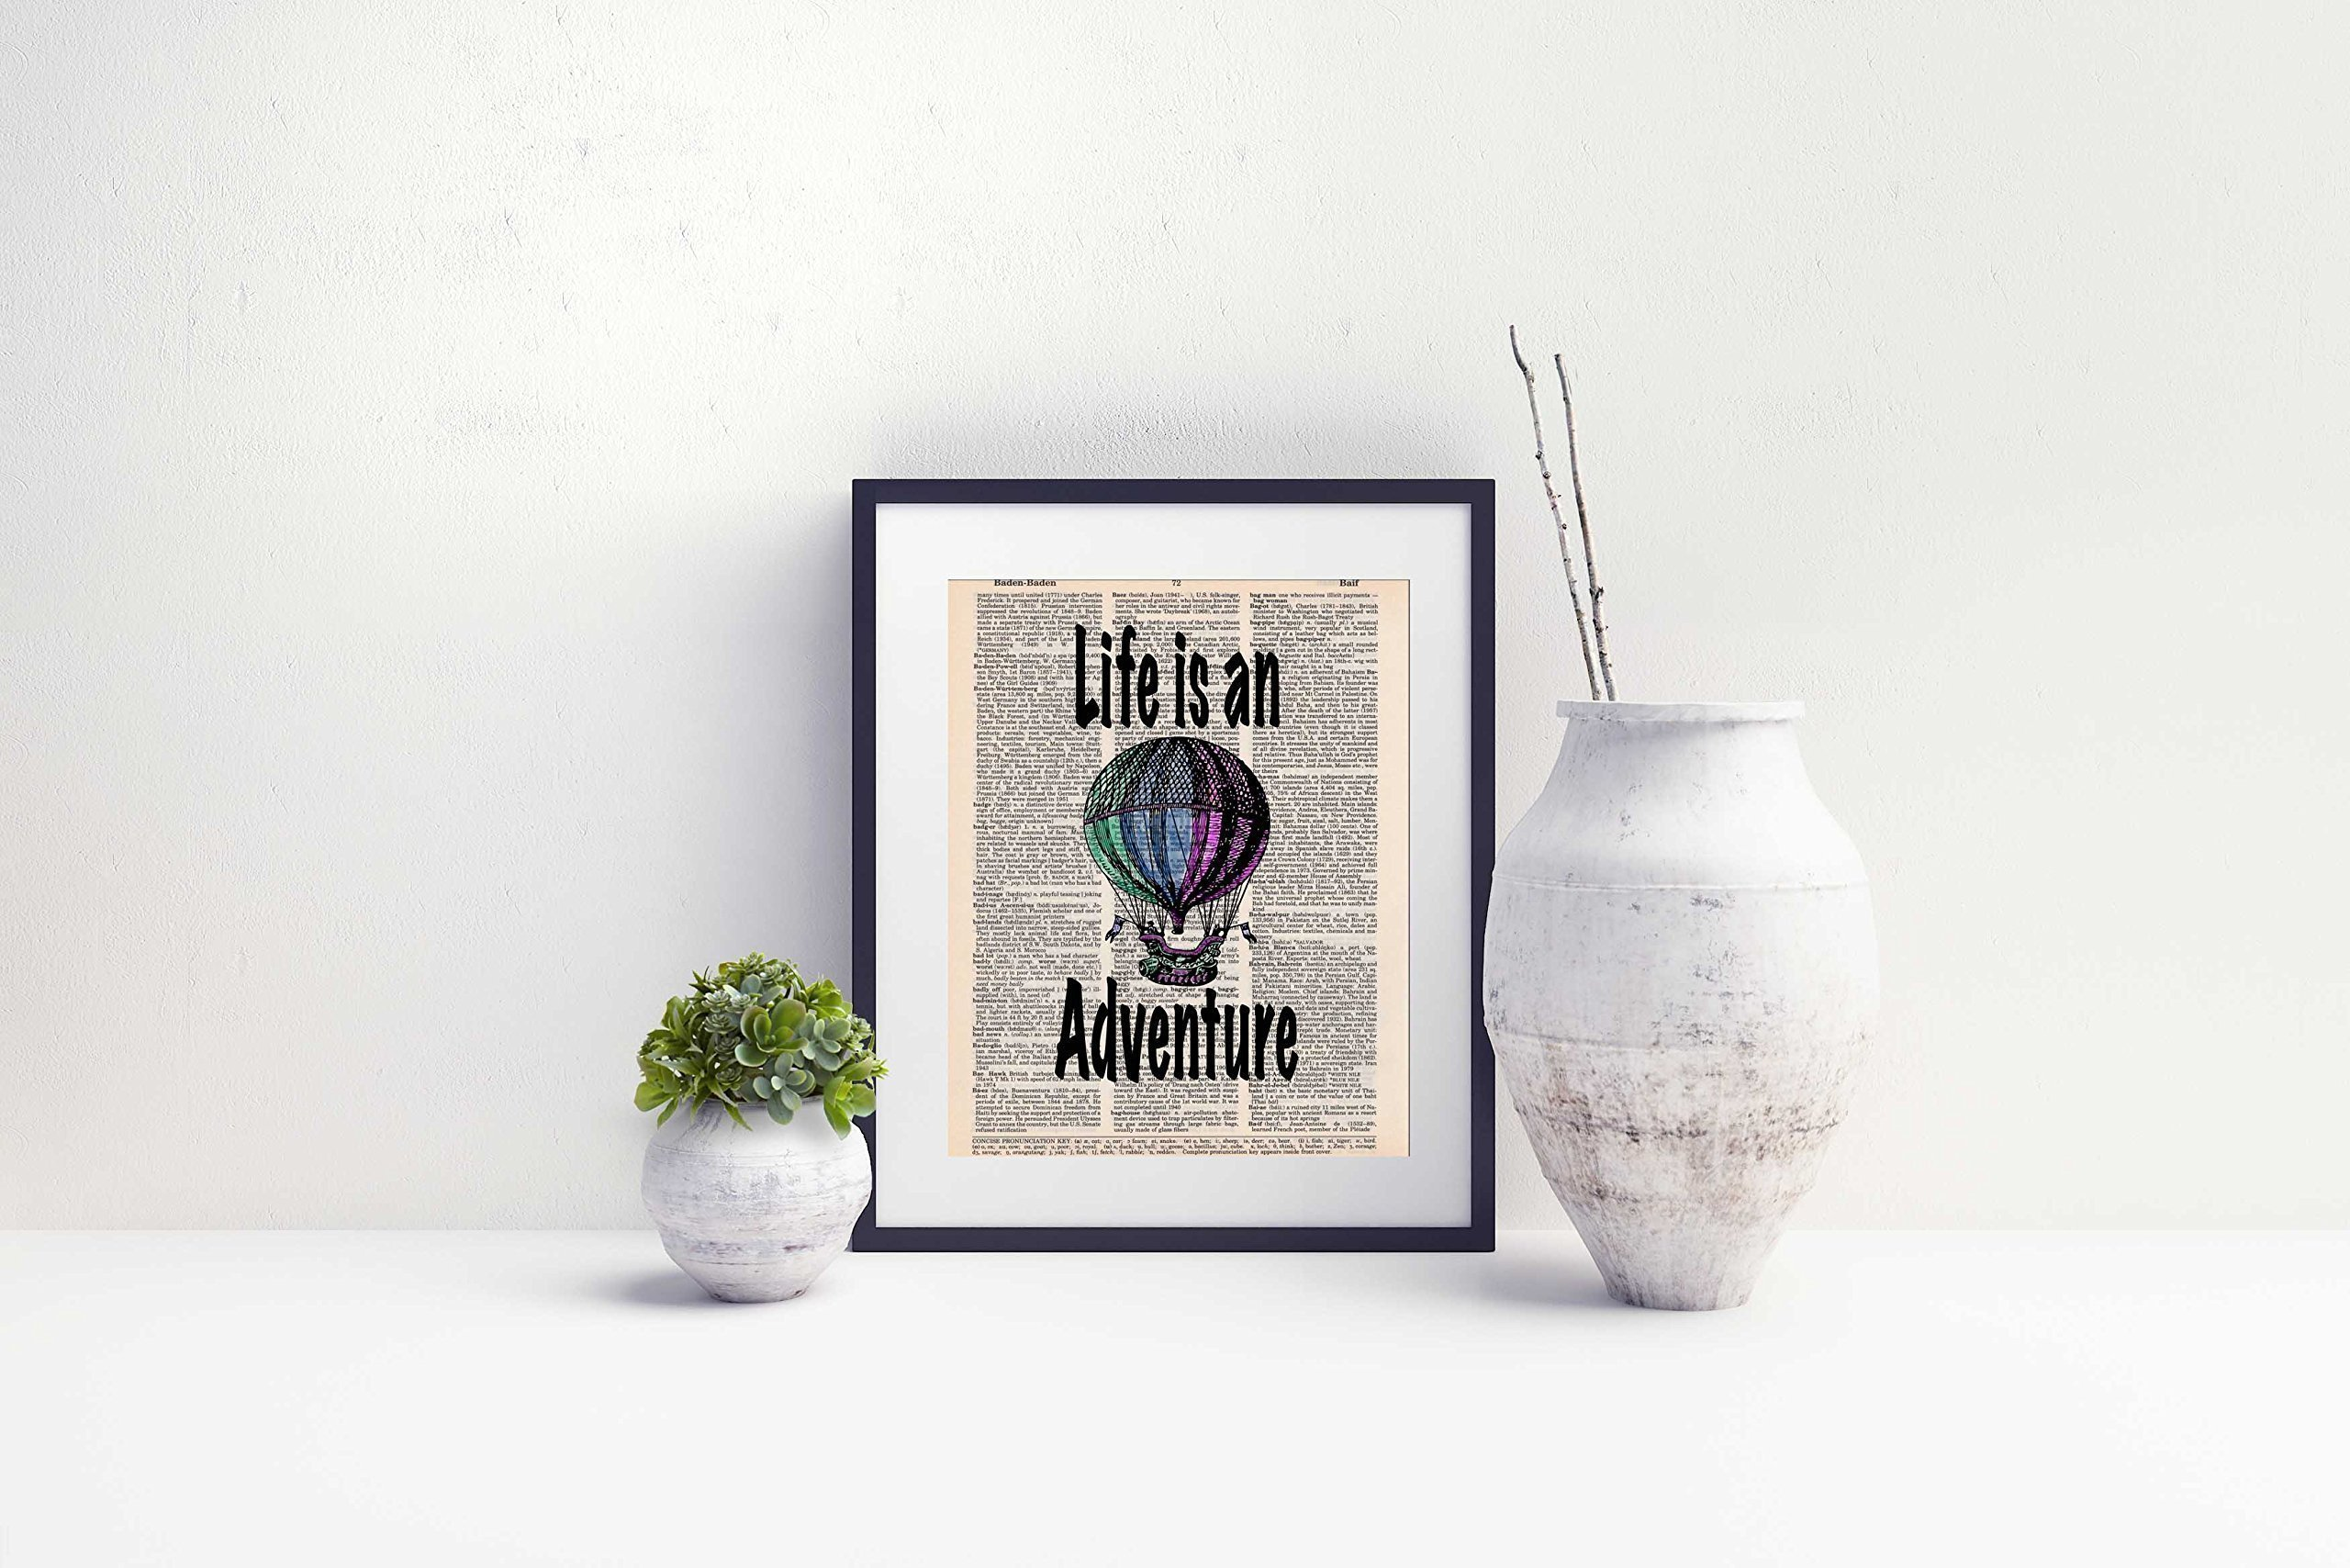 Hot Air Balloon, Life is an Adventure, Travel Wall Art, Dictionary Page Photo Print, 8x10, Unframed 4